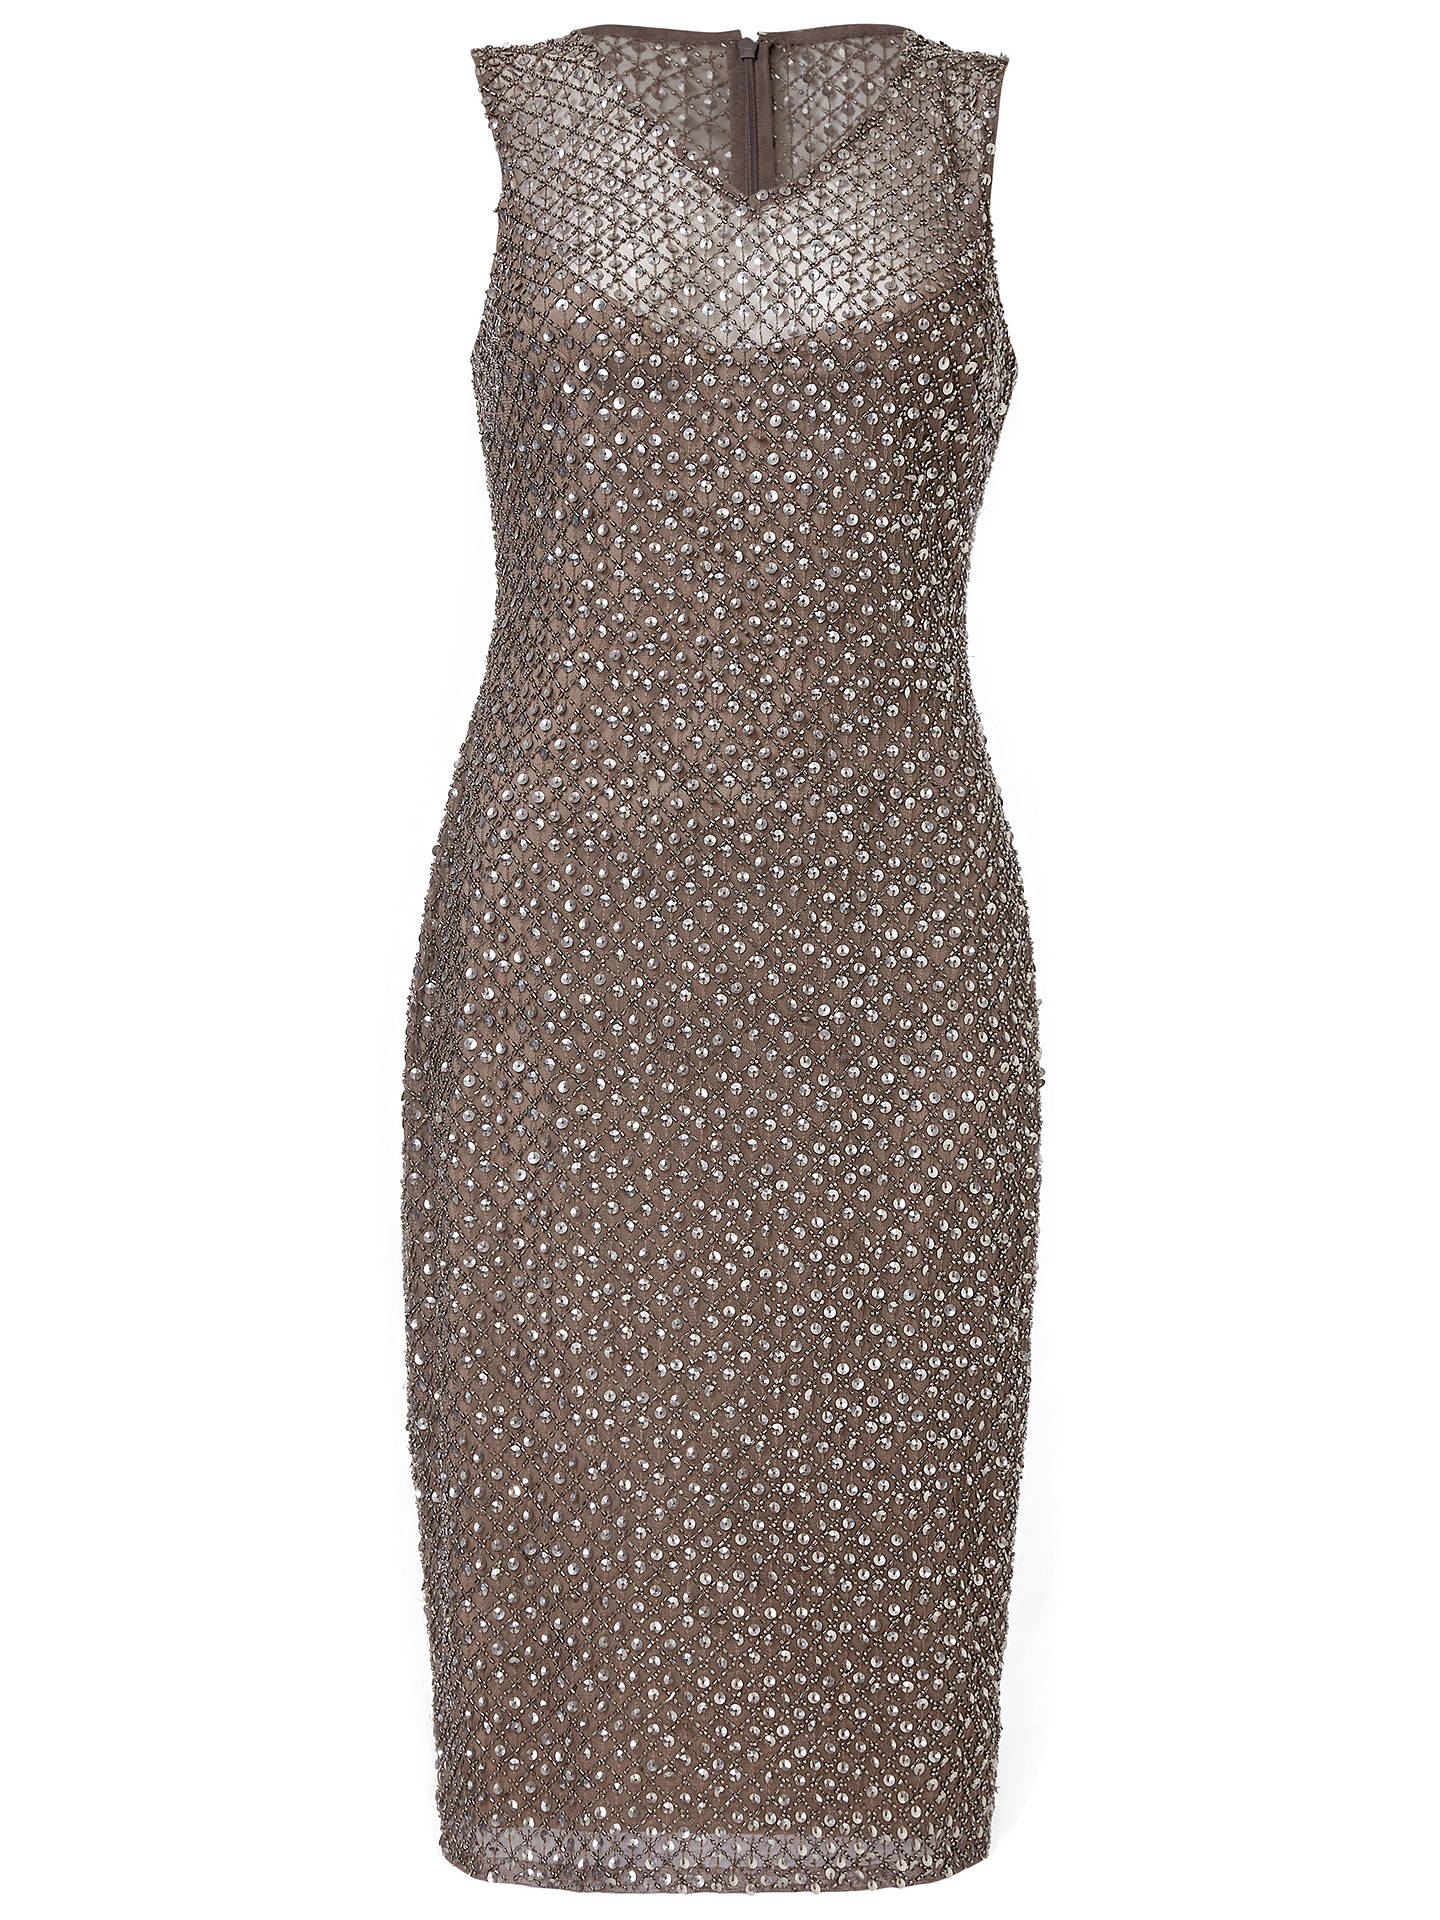 BuyAdrianna Papell Short Beaded Dress, Lead, 8 Online at johnlewis.com